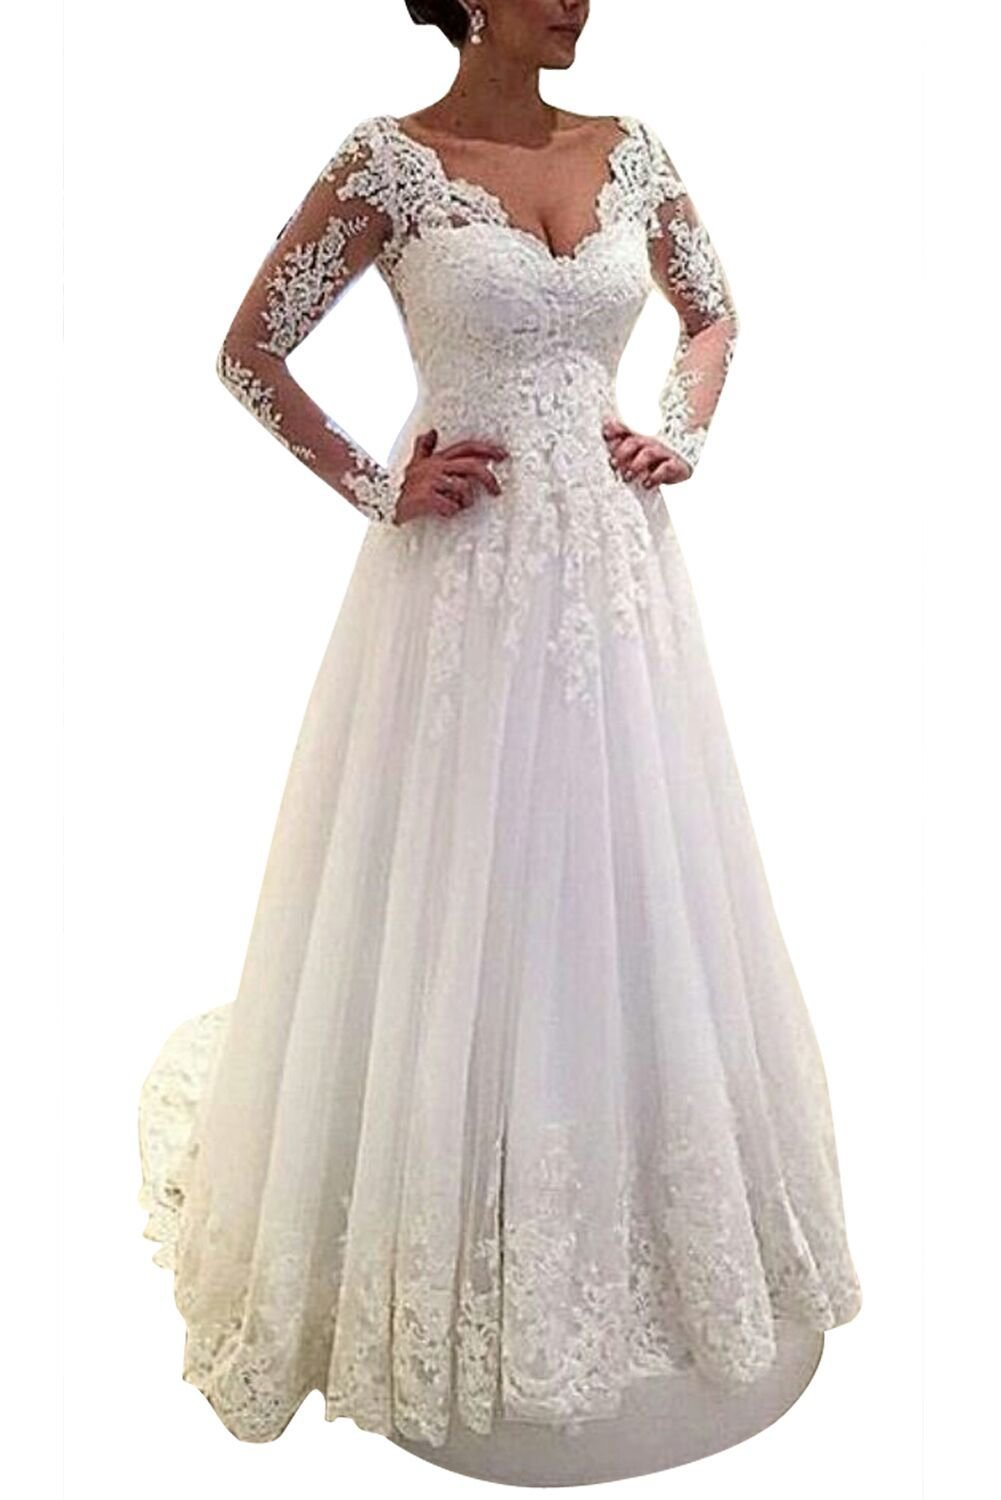 MARSEN Sweetheart Backless Wedding Dress Long Beaded Lace Appliques Bridal Gown White A Line Customize